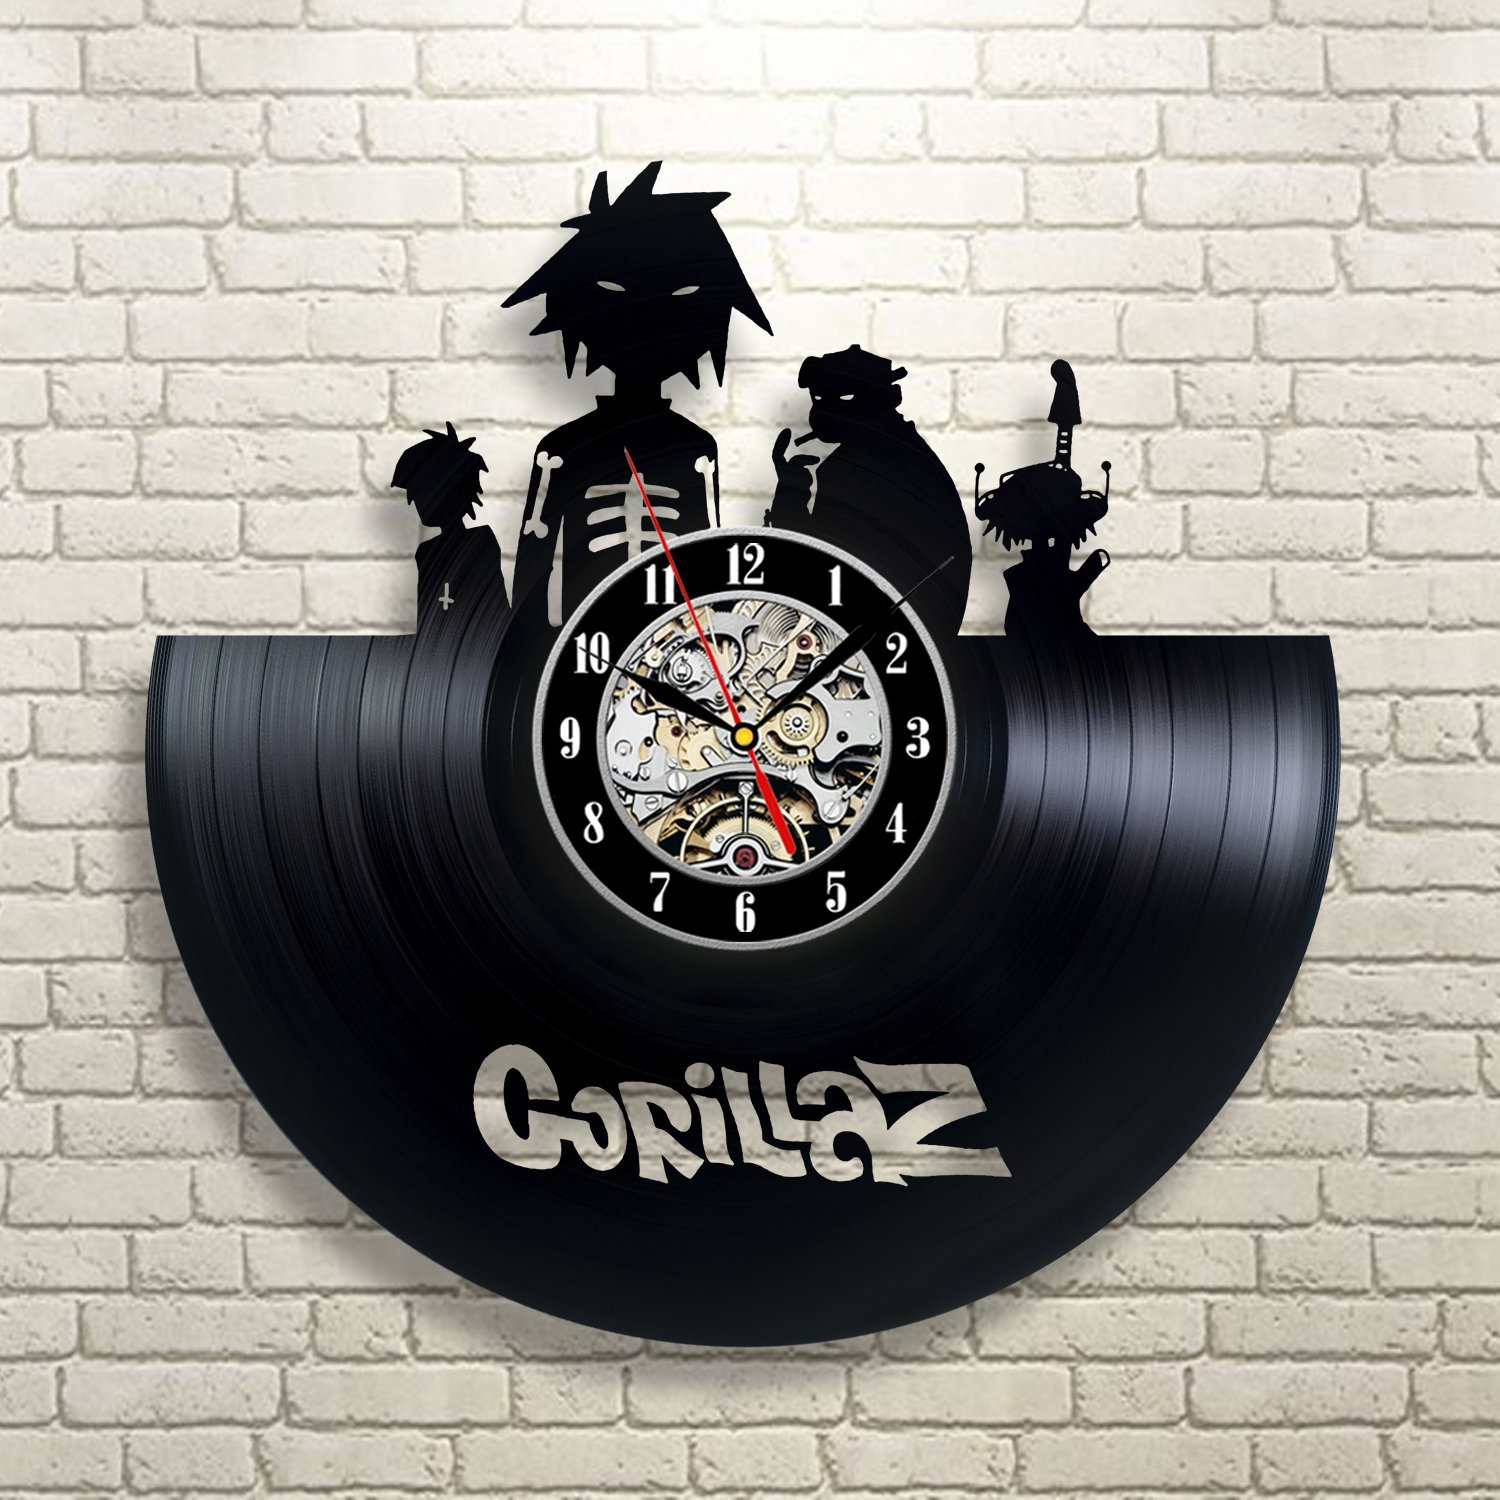 Gorillaz Vinyl Wall Clock Art Gift Room Modern Home Record Vintage Decoration Win a prize for feedback Win a prize for feedback B0183U1NVS